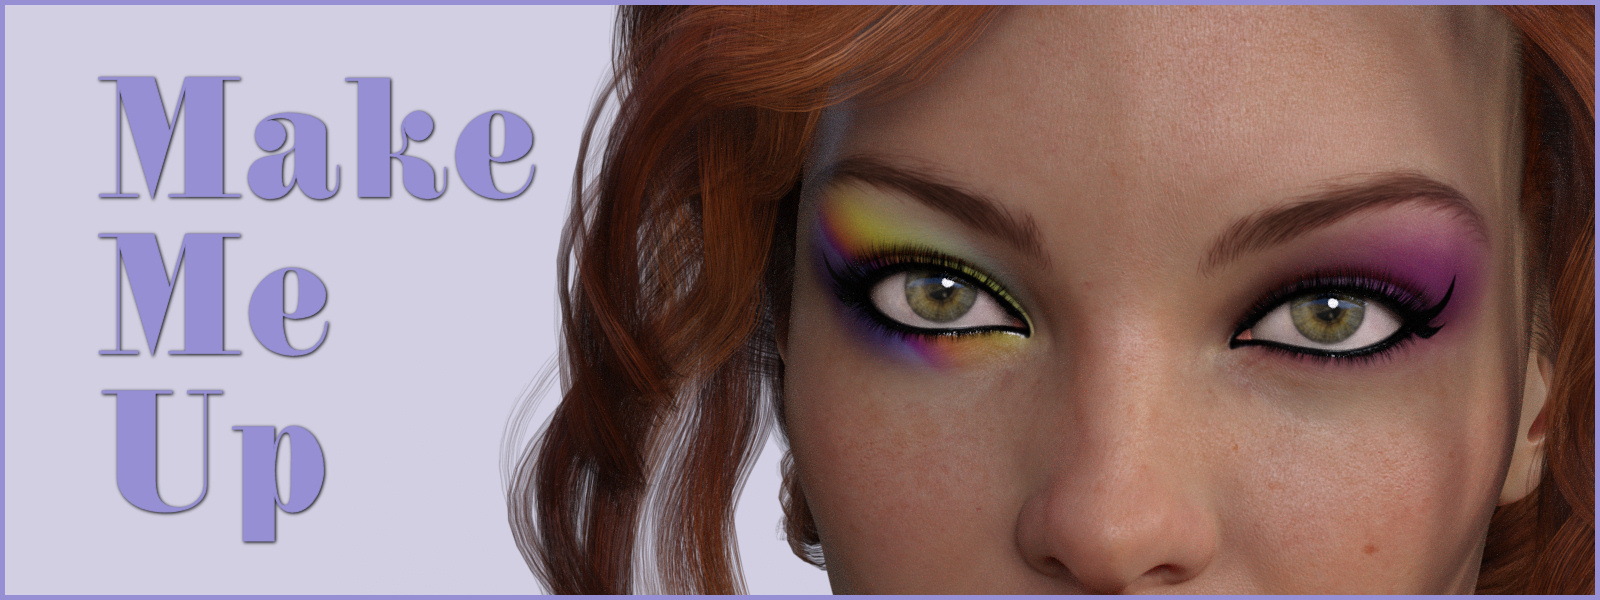 Make Me Up L.I.E and Merchant Resource for G8F